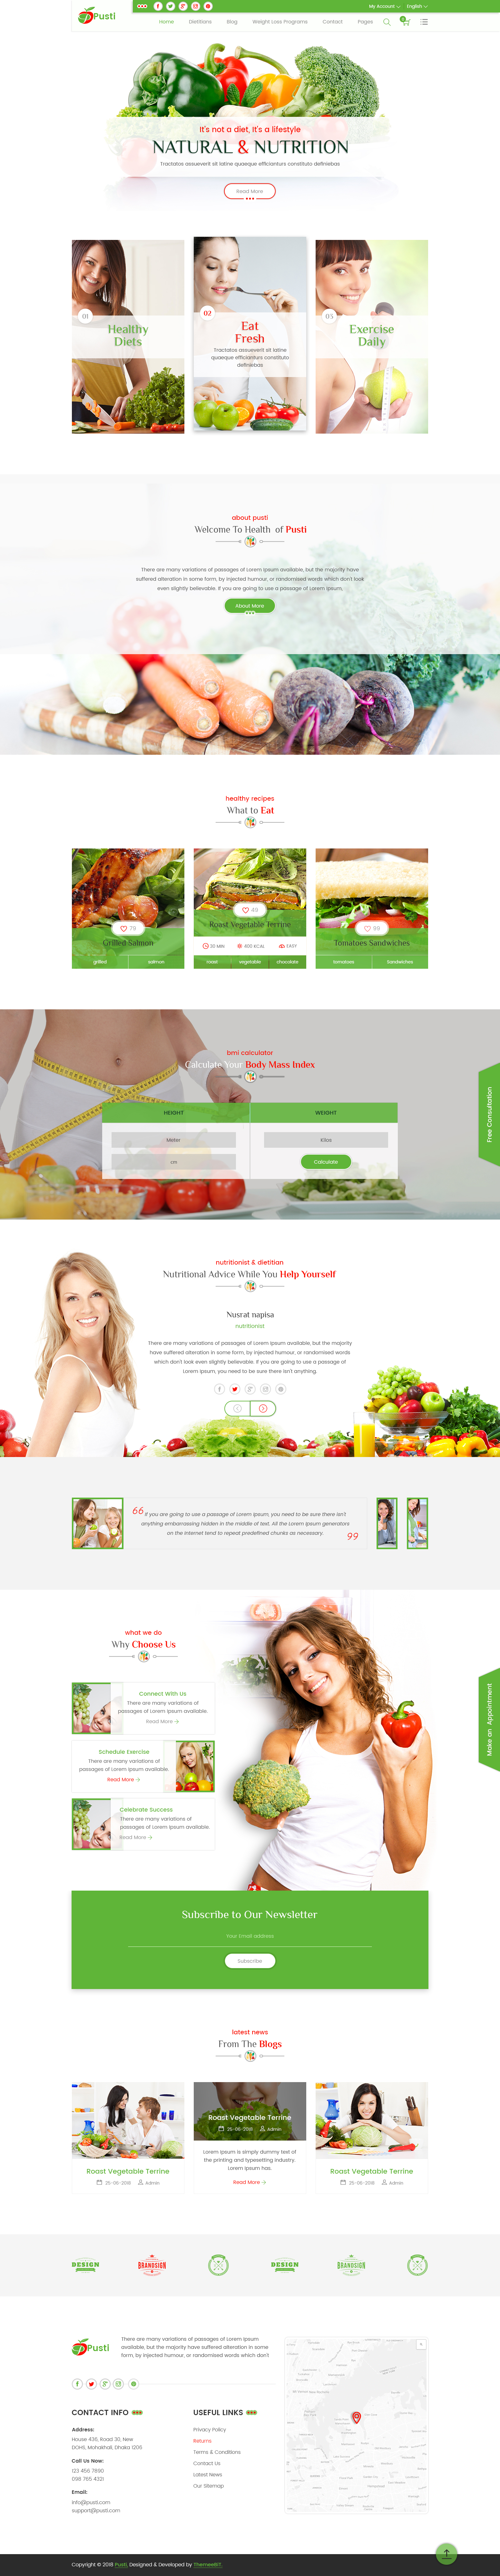 Pusti Nutrition Natural Diet Consultancy Center Psd Template By